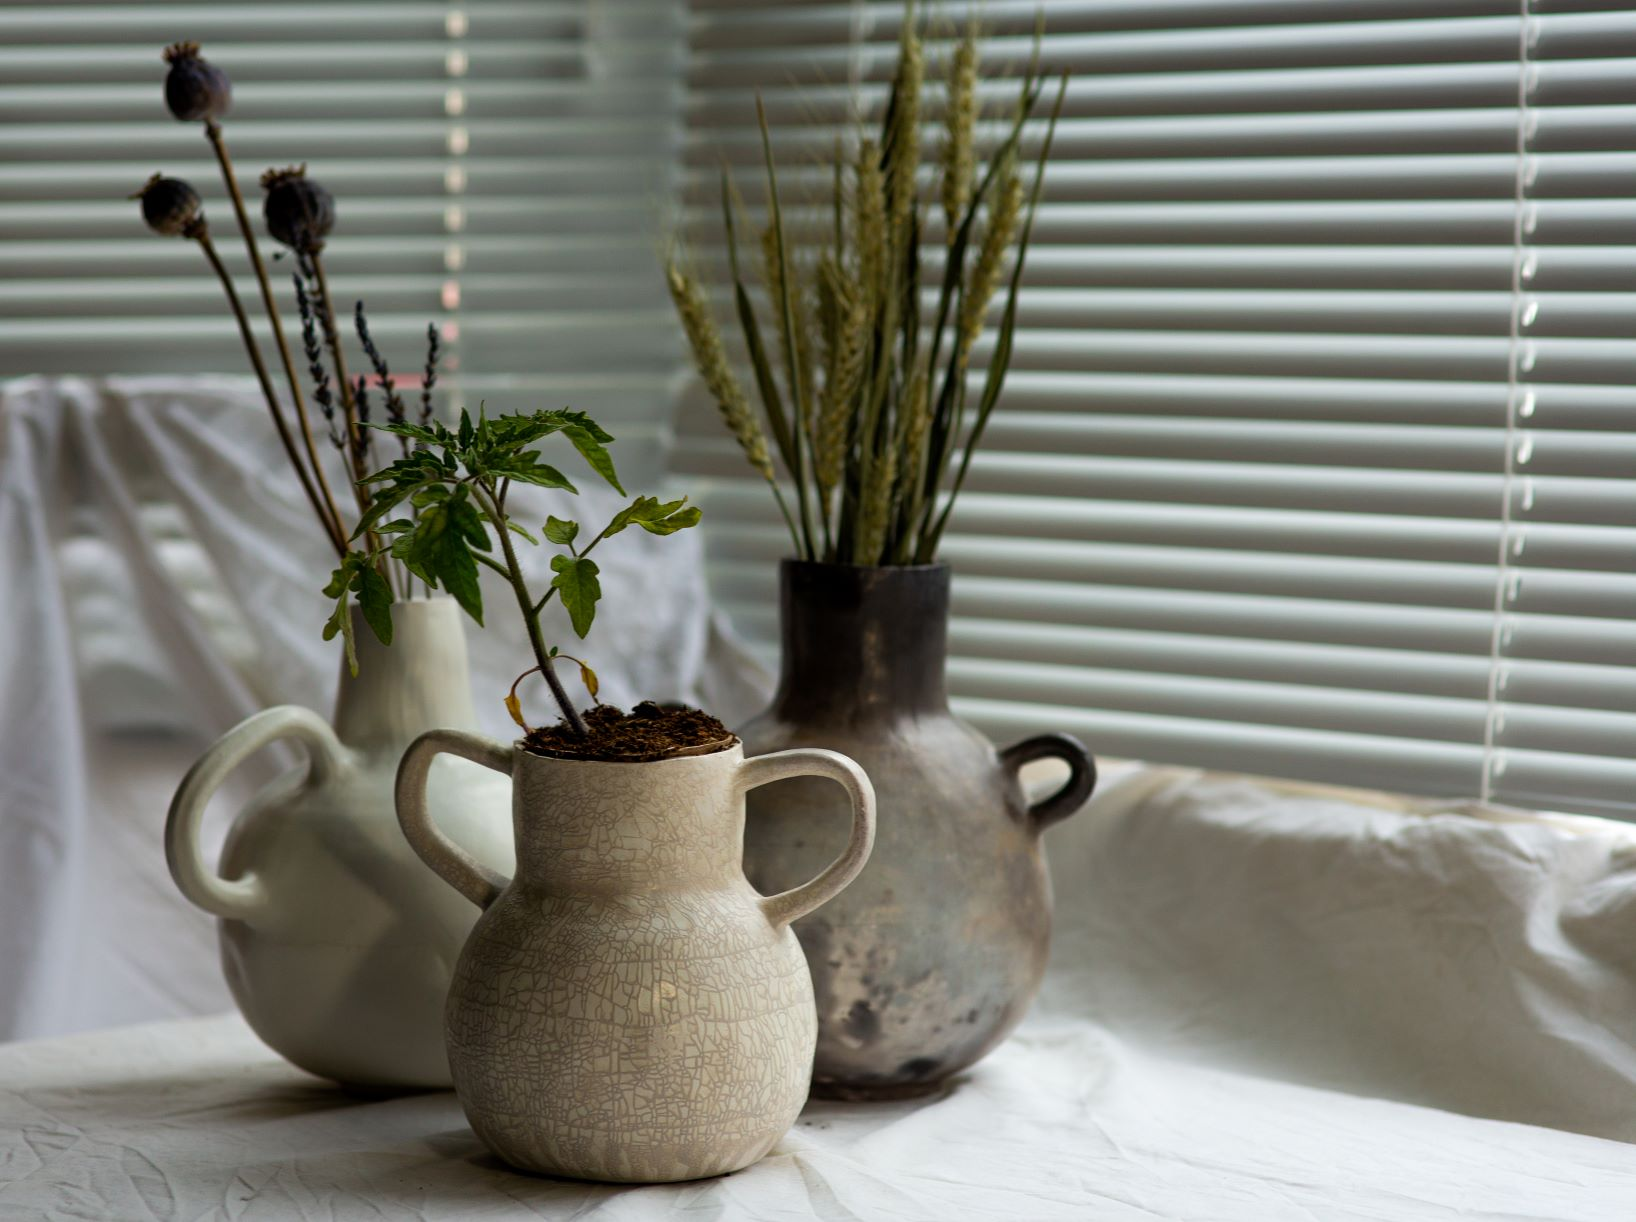 A collection of large pots holding fresh and dried plants.